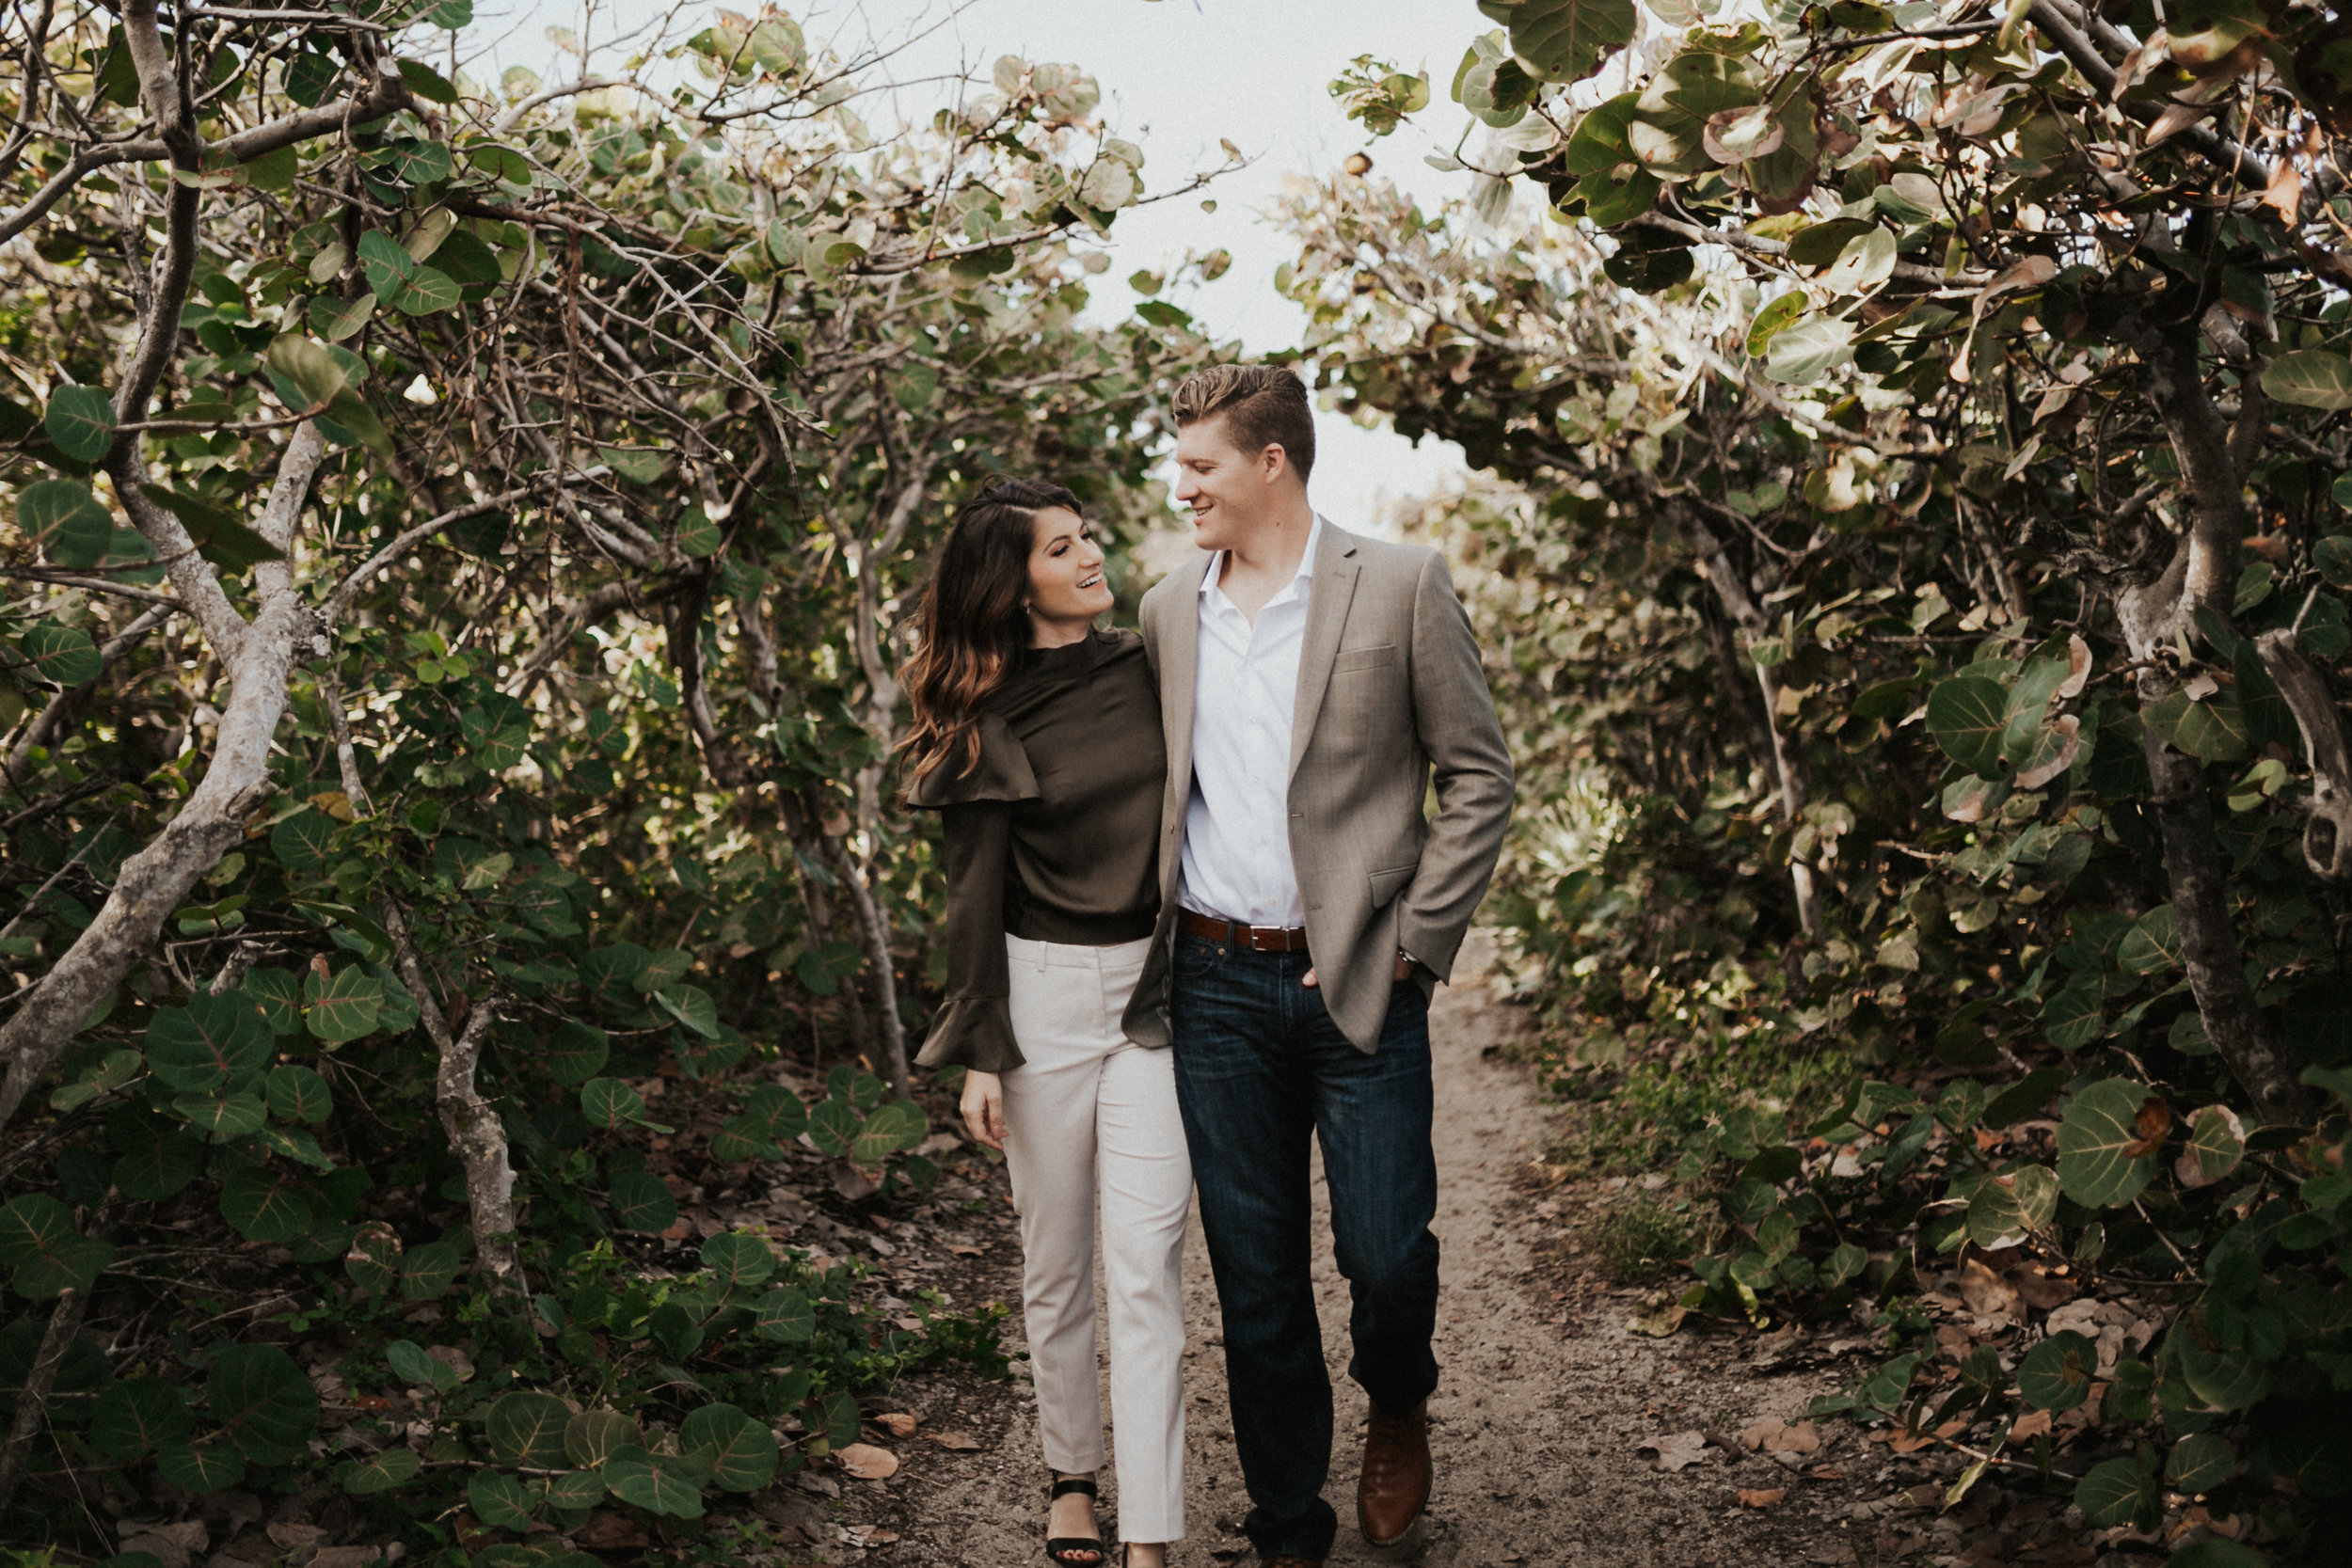 Stunning engagement session in south florida landscape.jpg